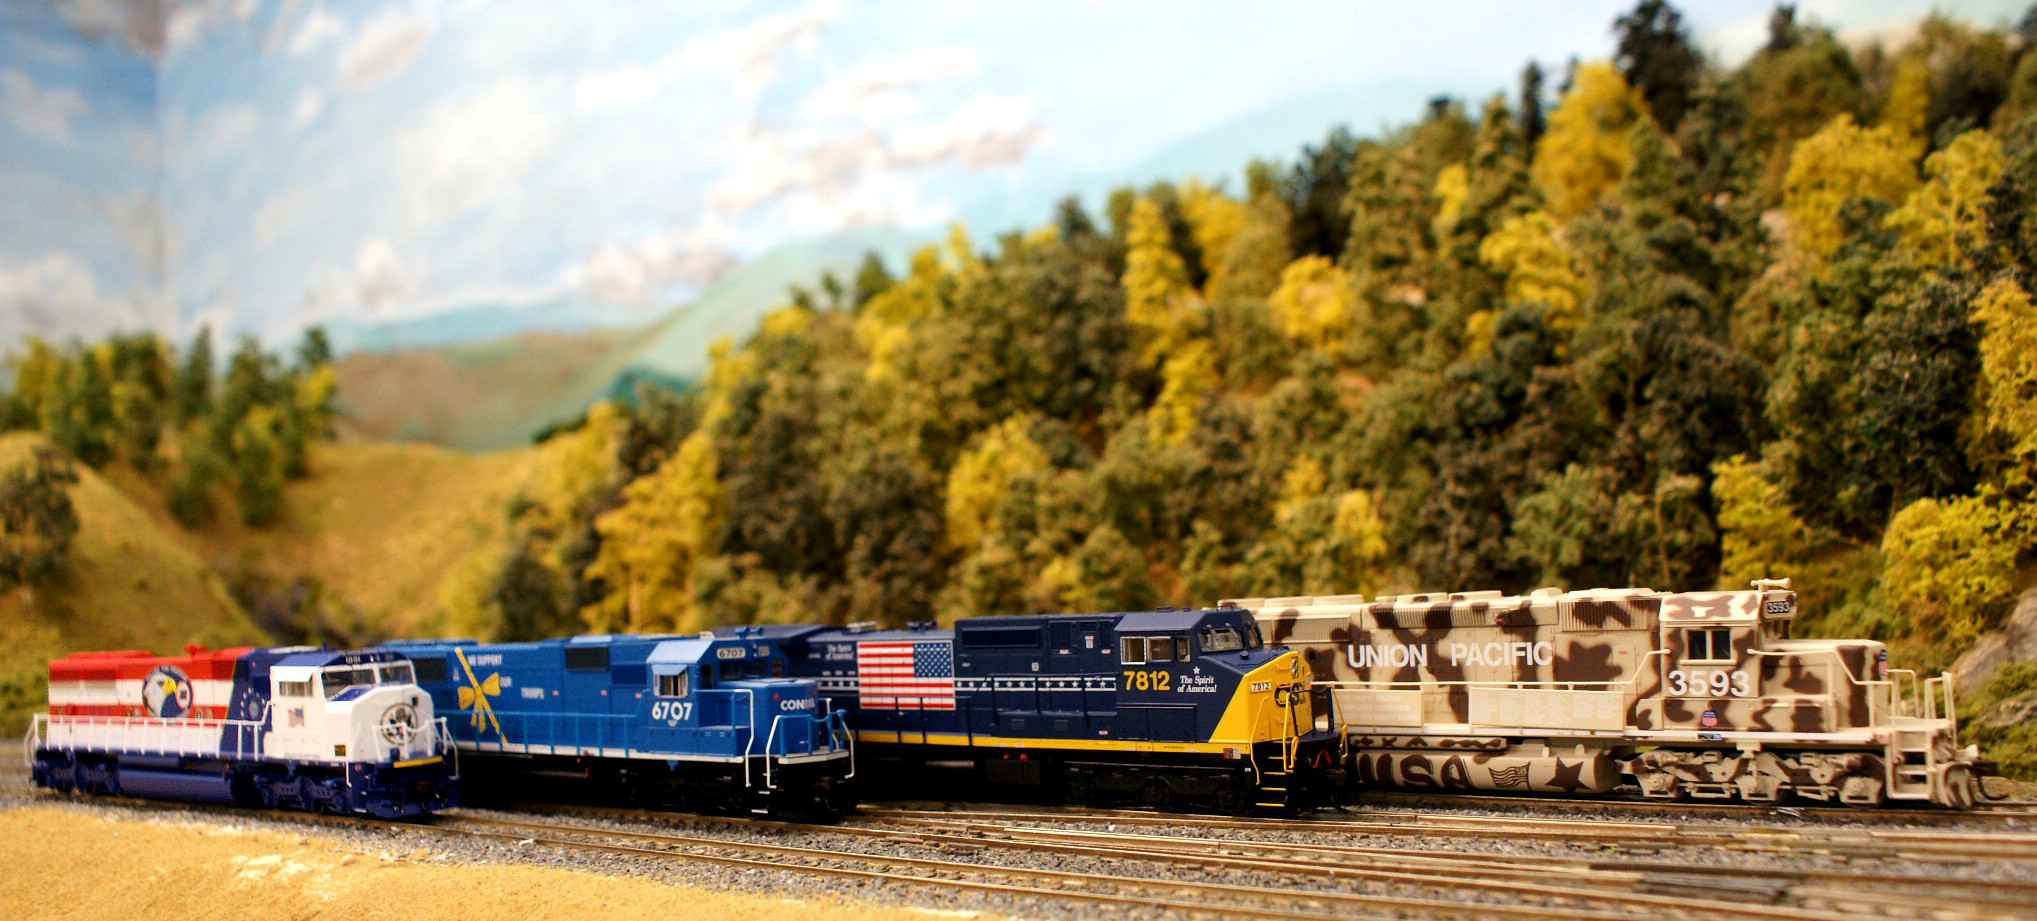 Athearn and Atlas have produced models of all four special locomotives painted in honor of Desert Storm servicemen